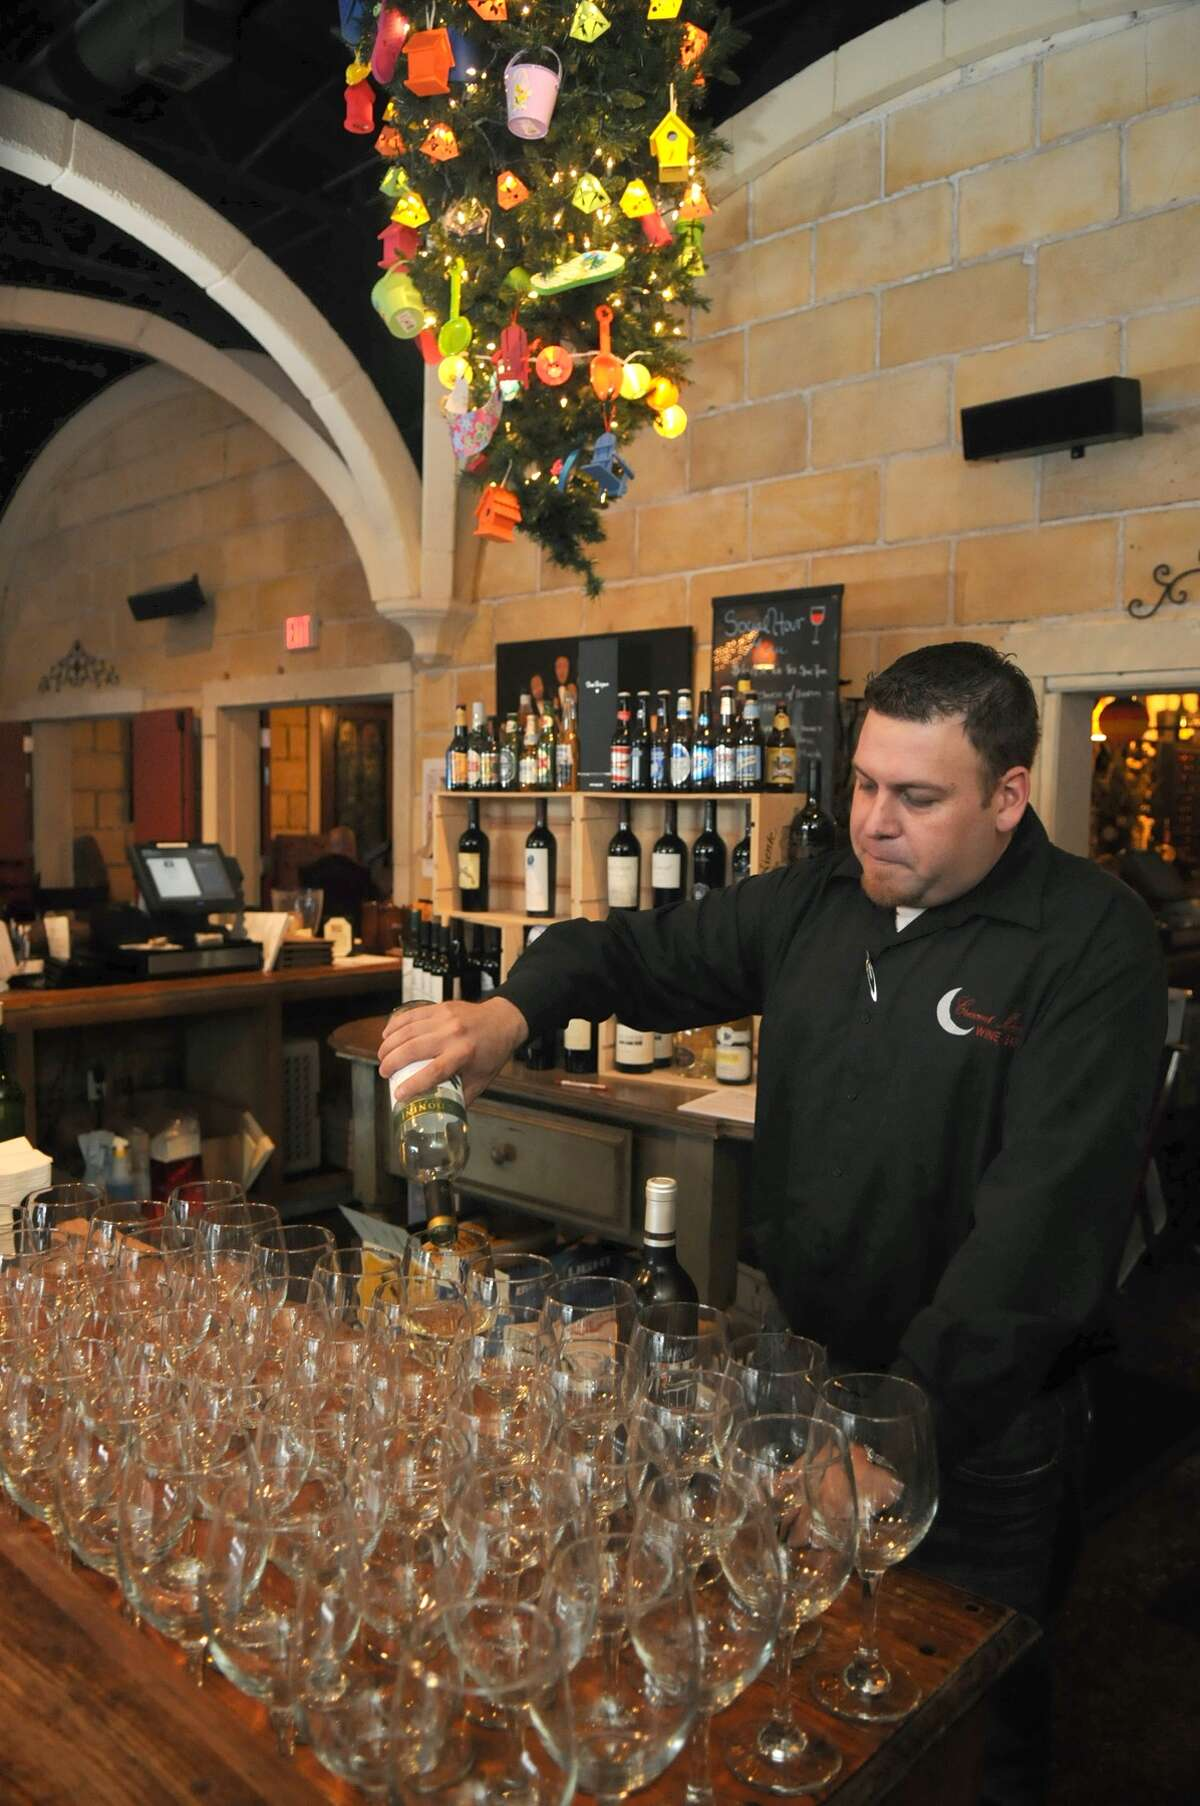 Manager Mike Cantu pours a glass of wine at the Crescent Moon Wine Bar and Restaurant in Spring.